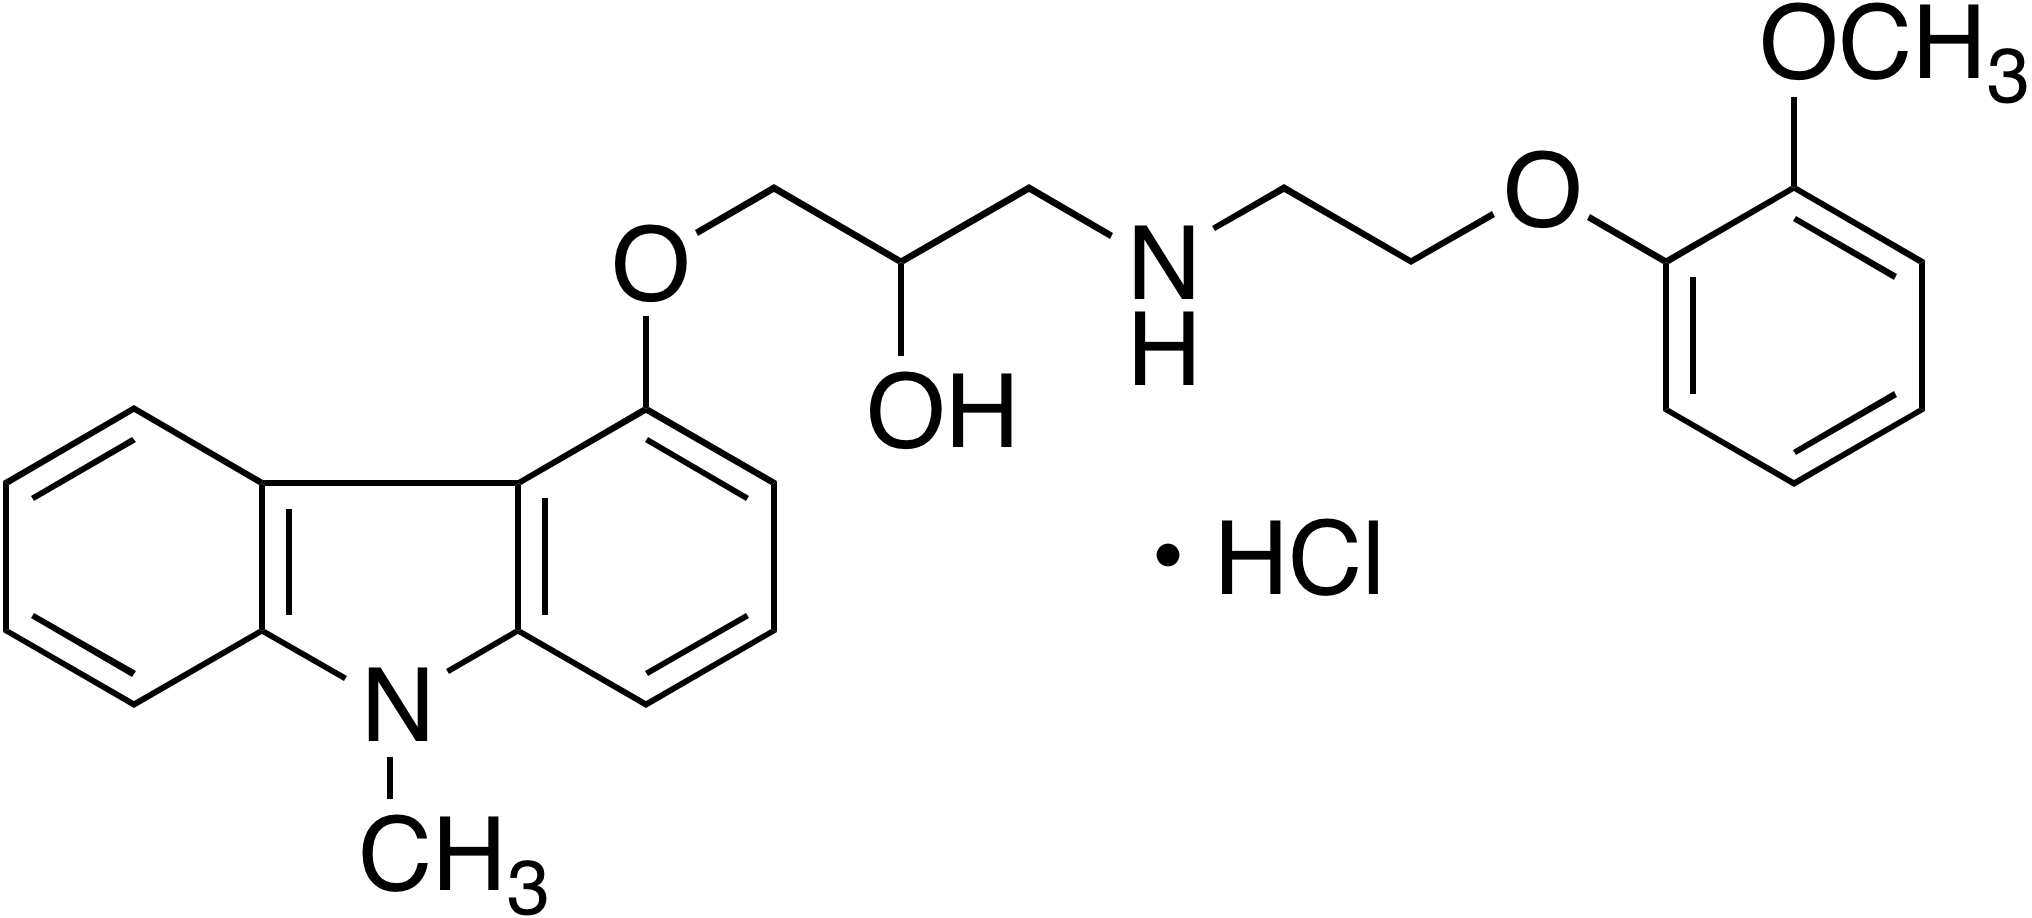 N-Methyl Carvedilol hydrochloride